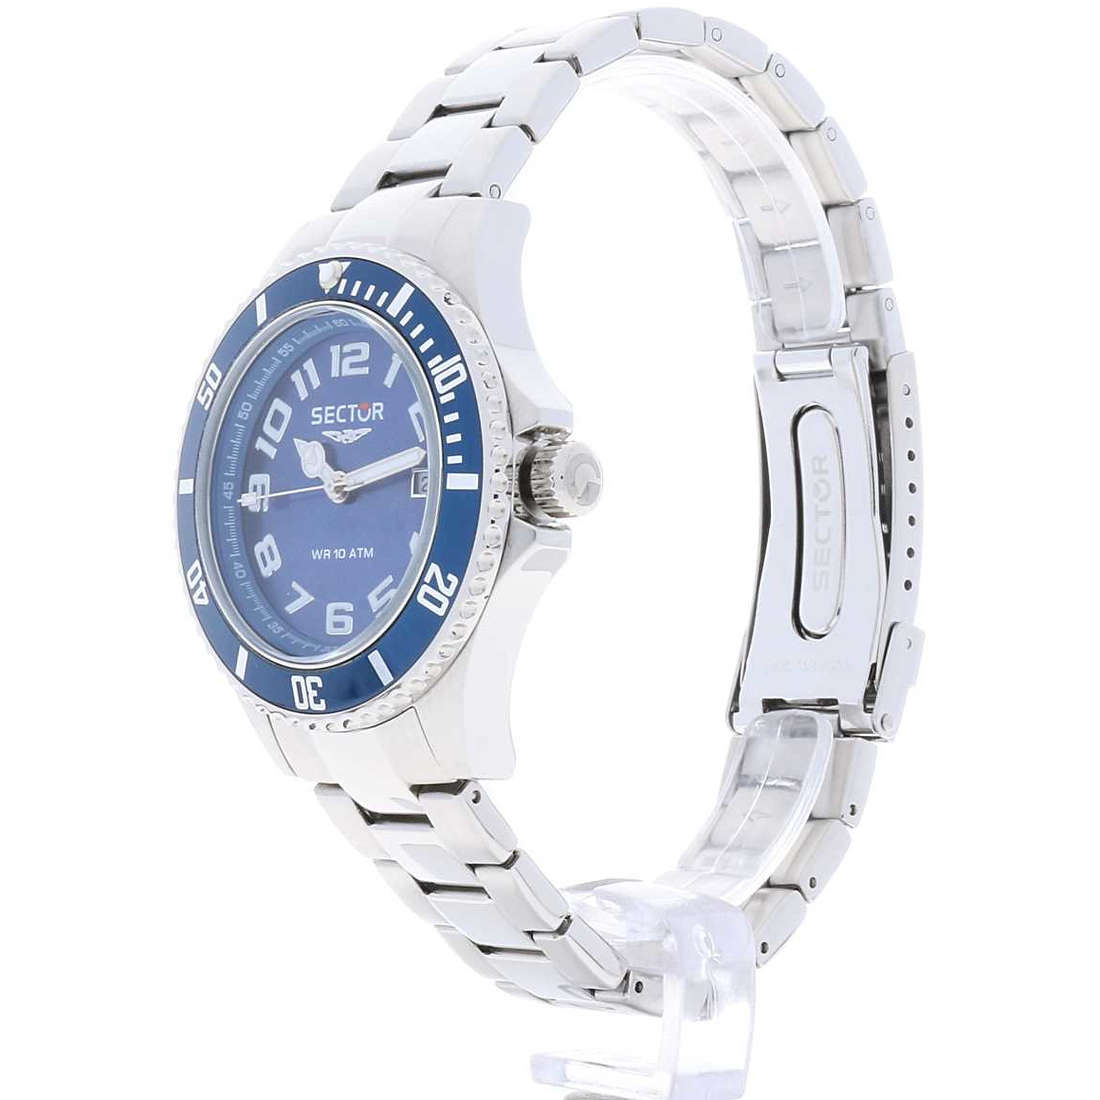 vente montres homme Sector R3253161013